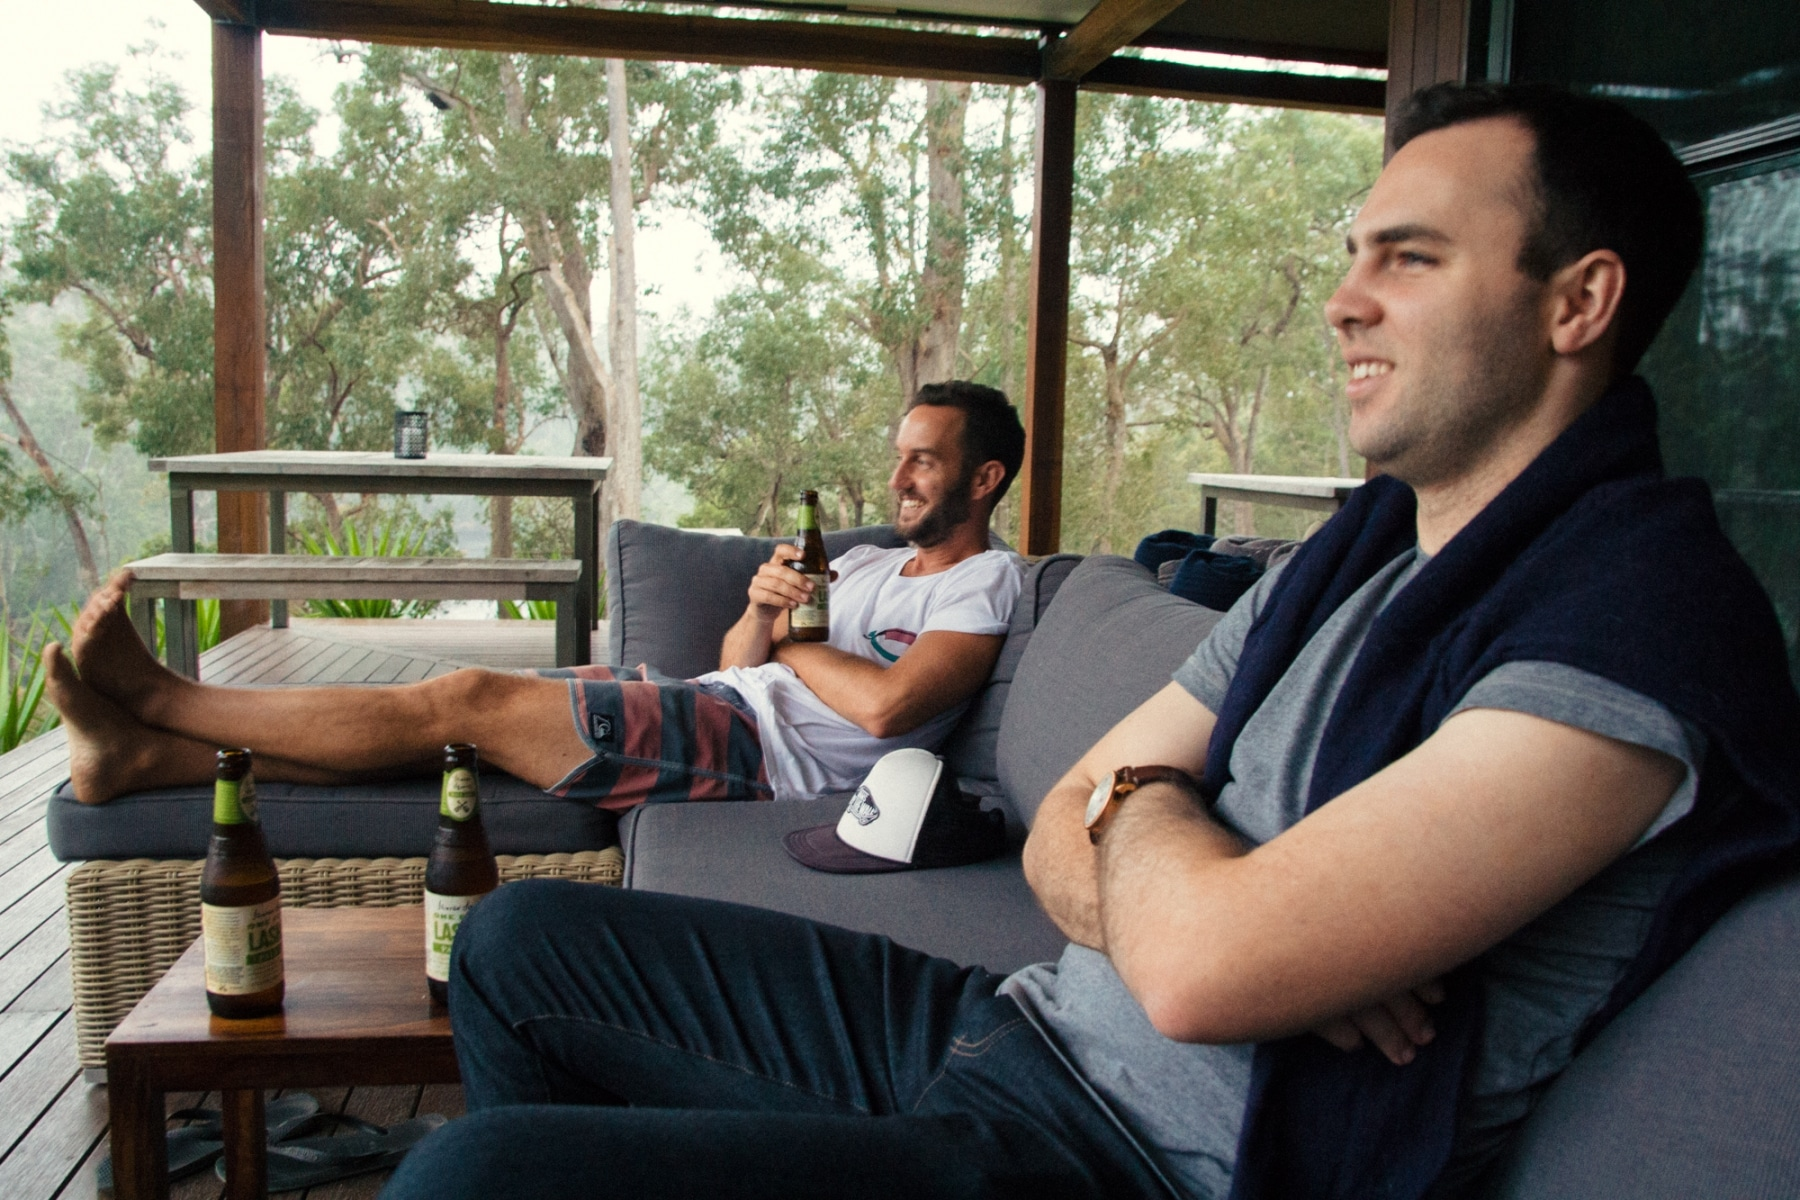 Two men sitting on outdoor sofa